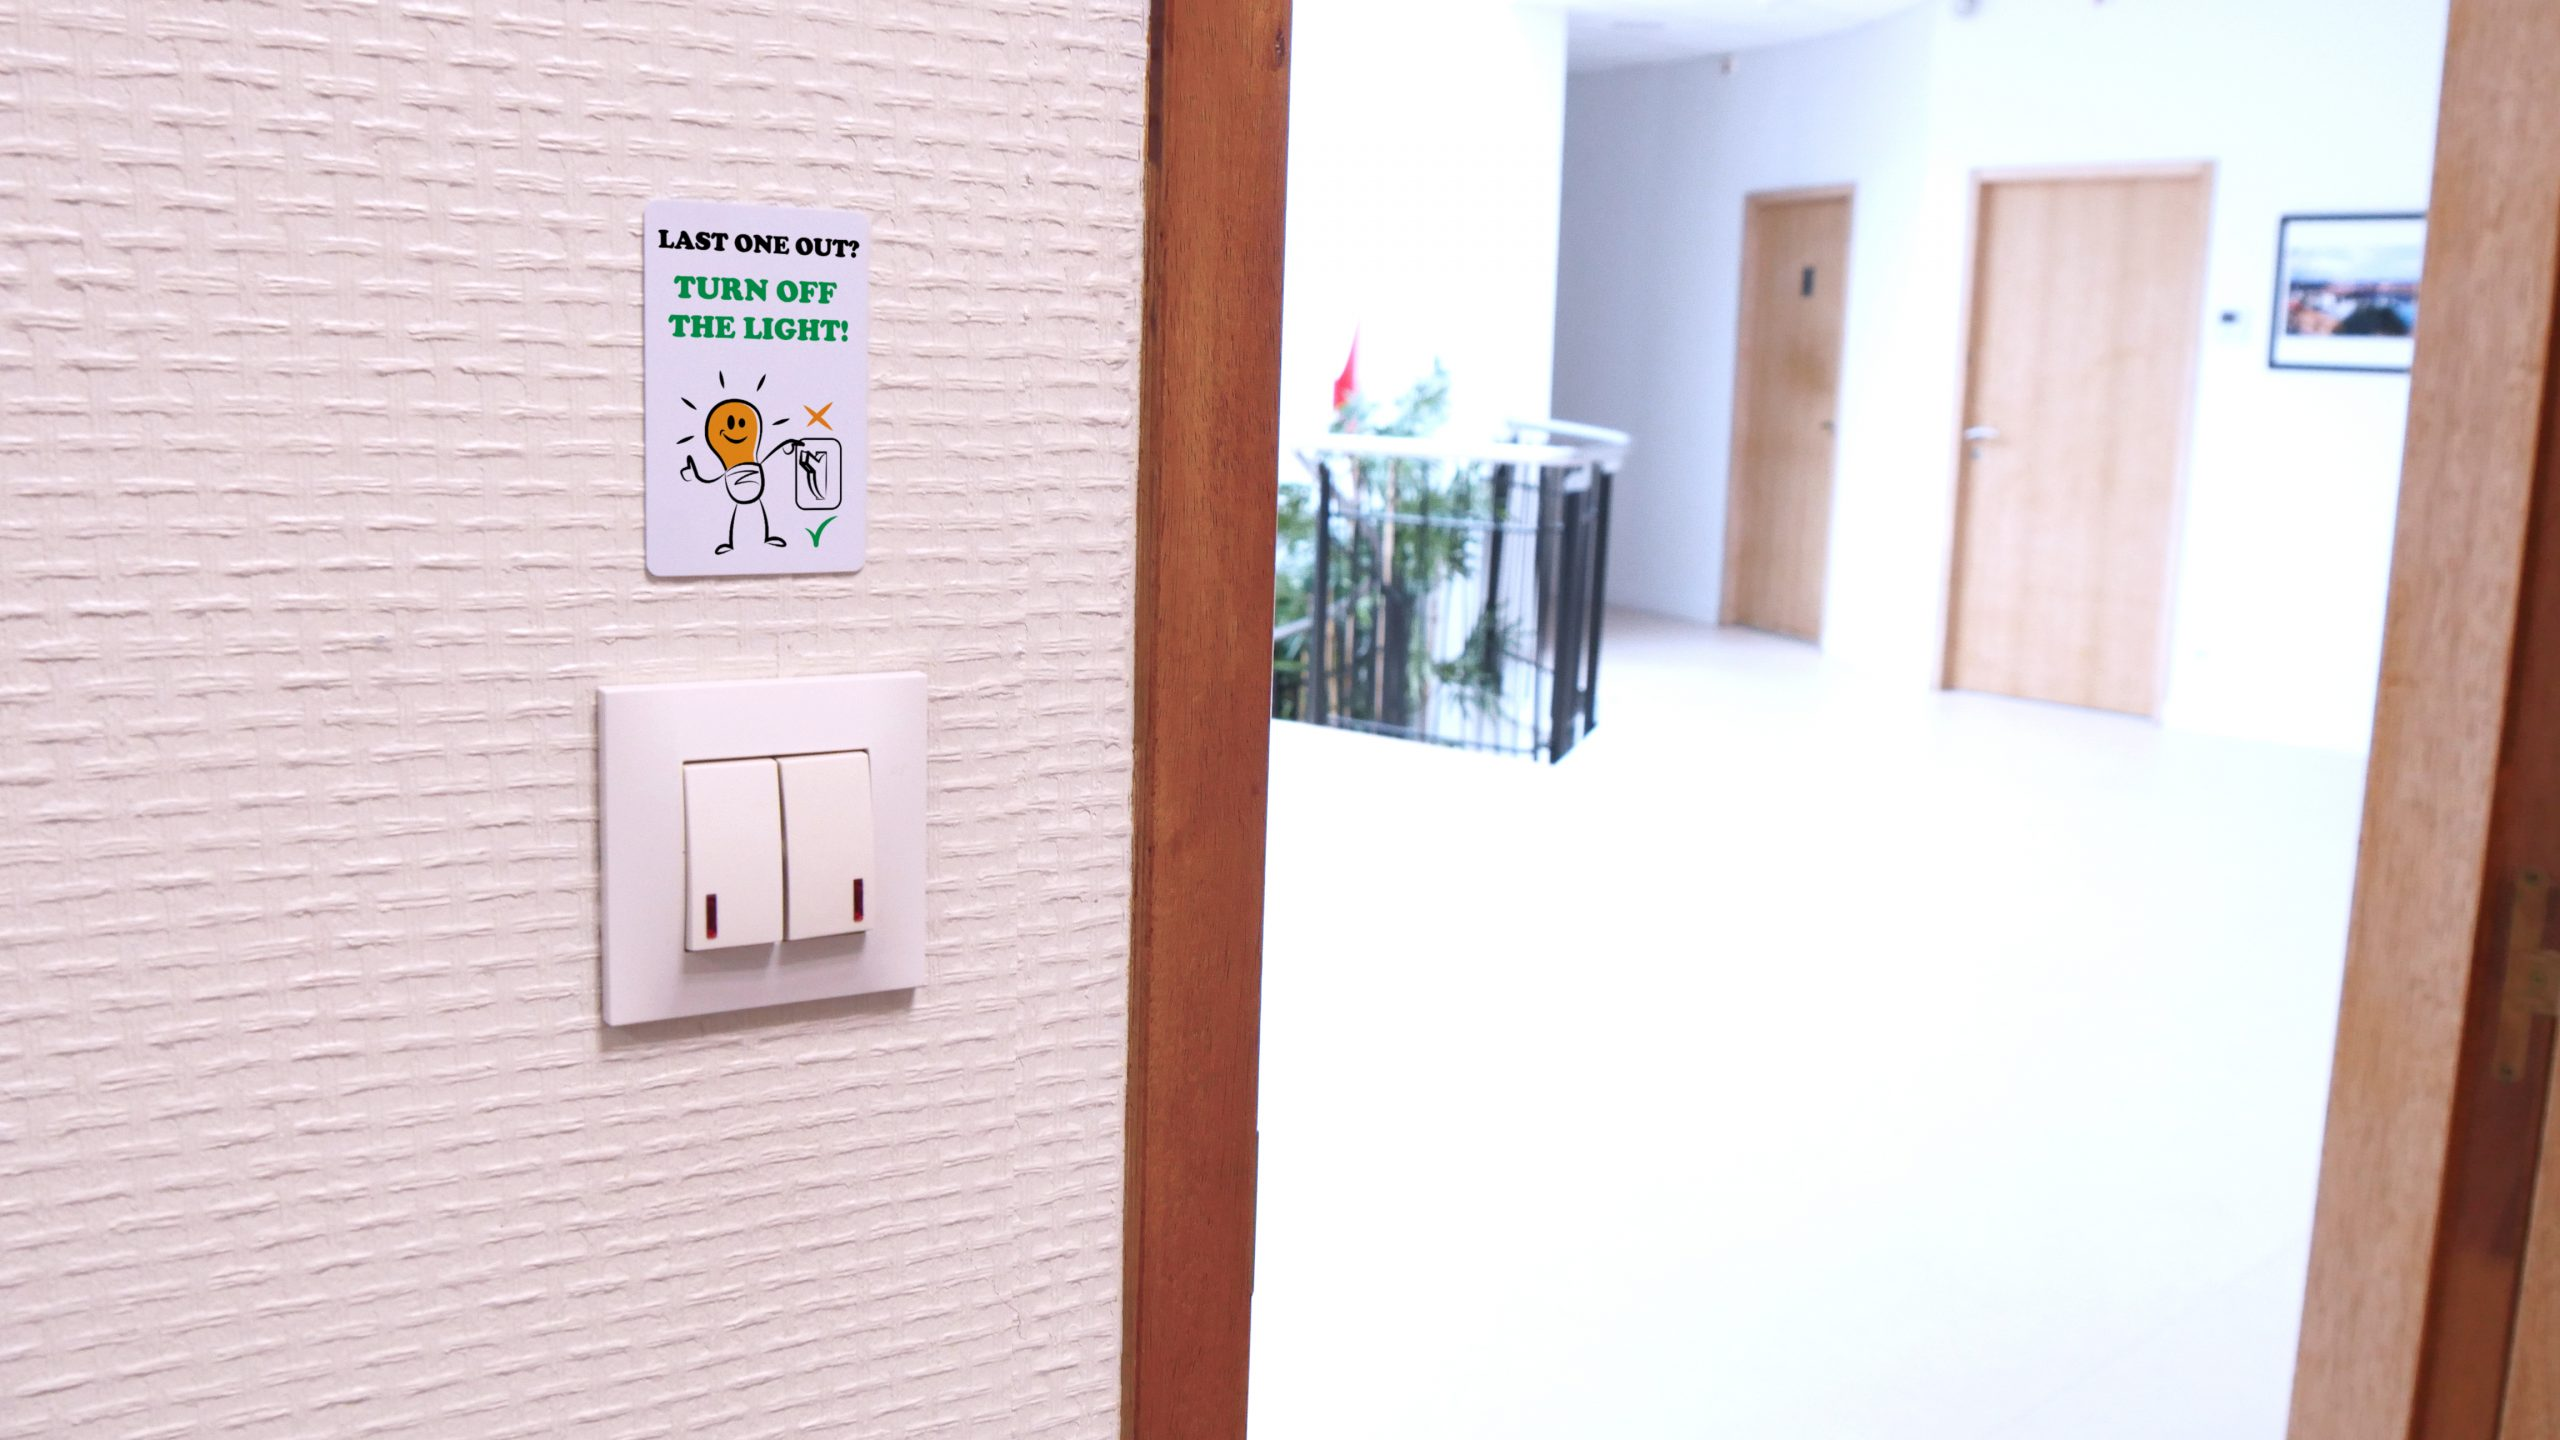 interior signage card to ask to turn off the light